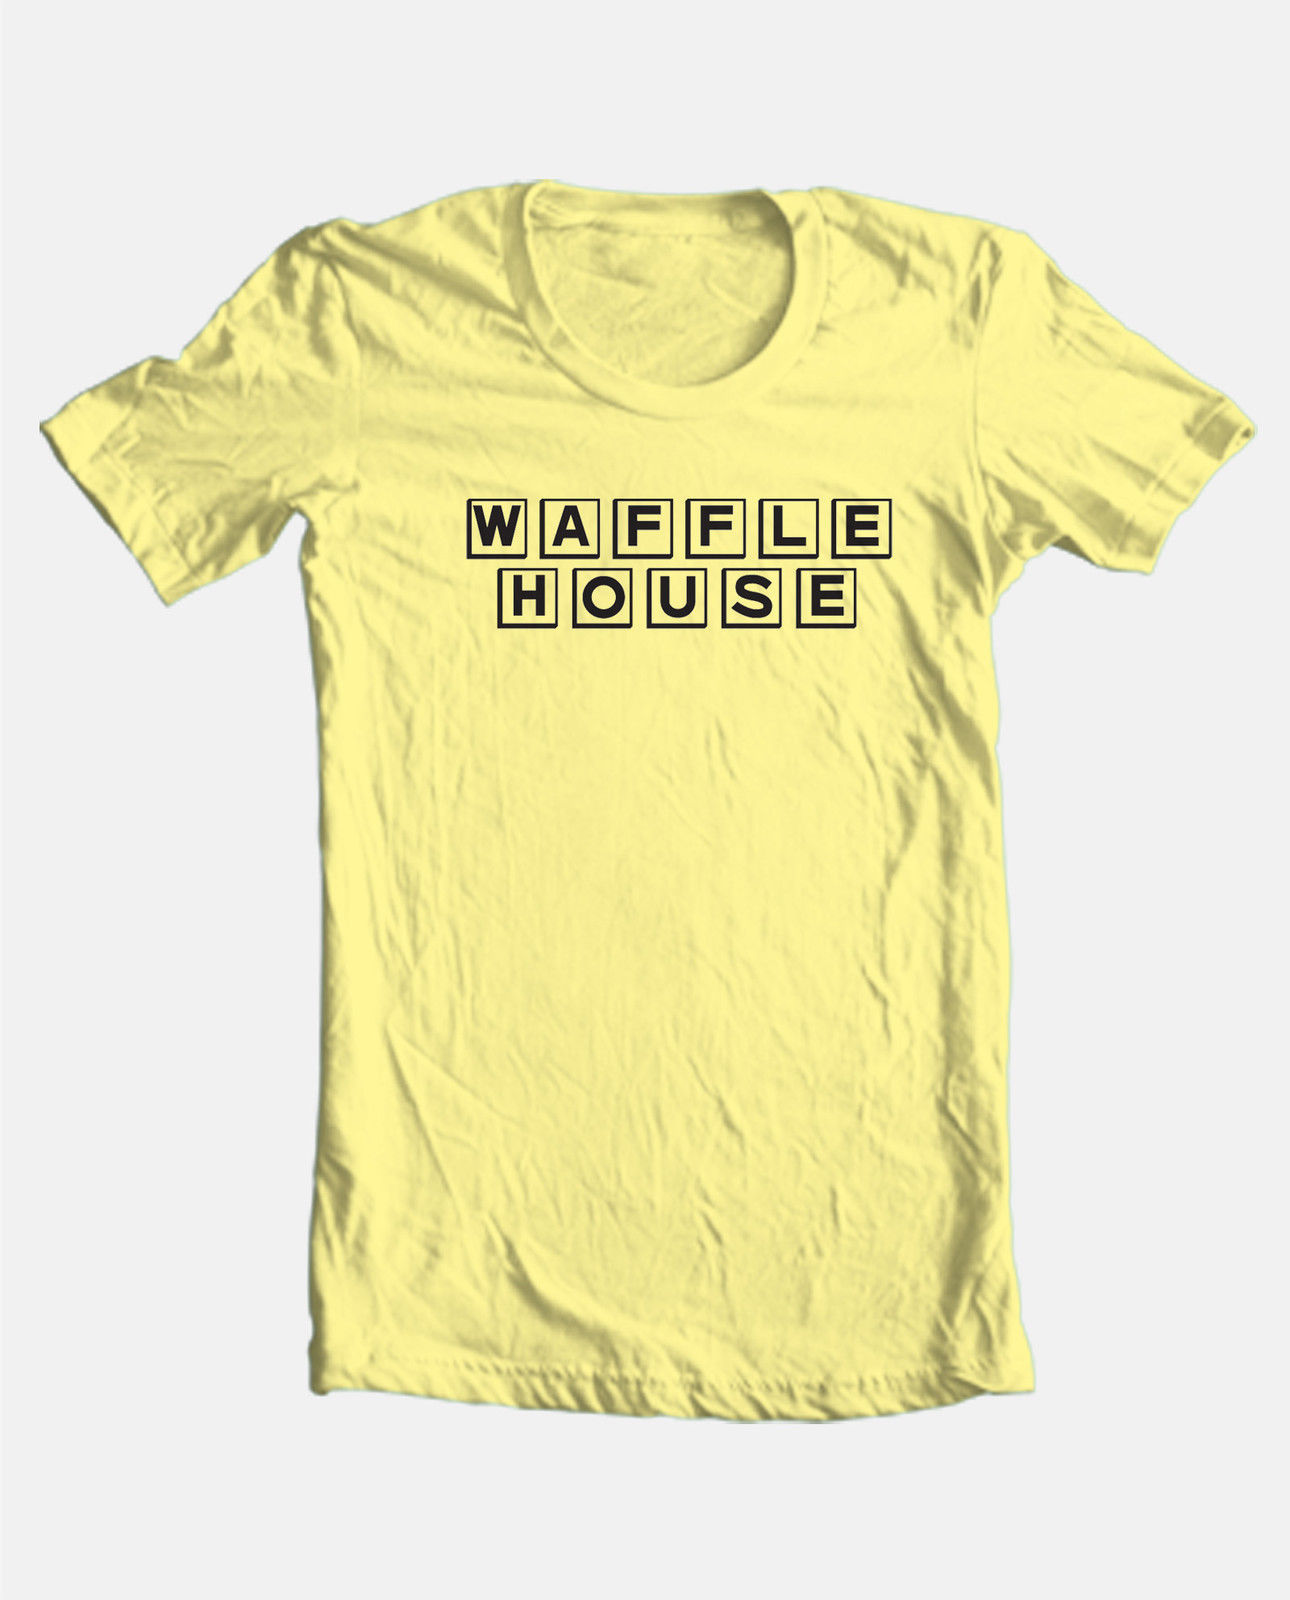 Waffle House T-shirt retro 80's fast food 100% cotton graphic mens tee